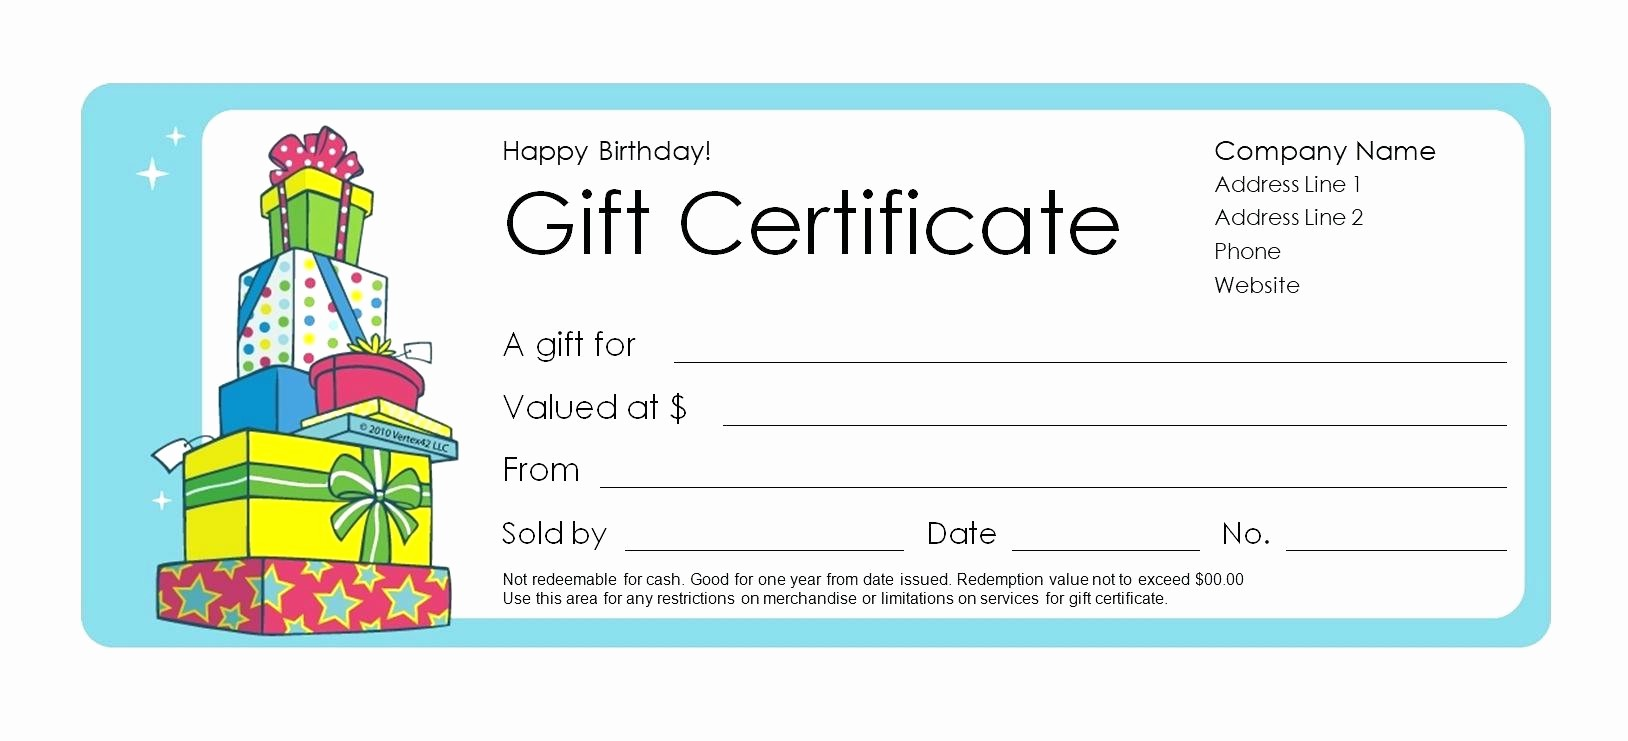 Make Up Gift Certificate Template Luxury Template Word Document Gift Certificate Template Voucher